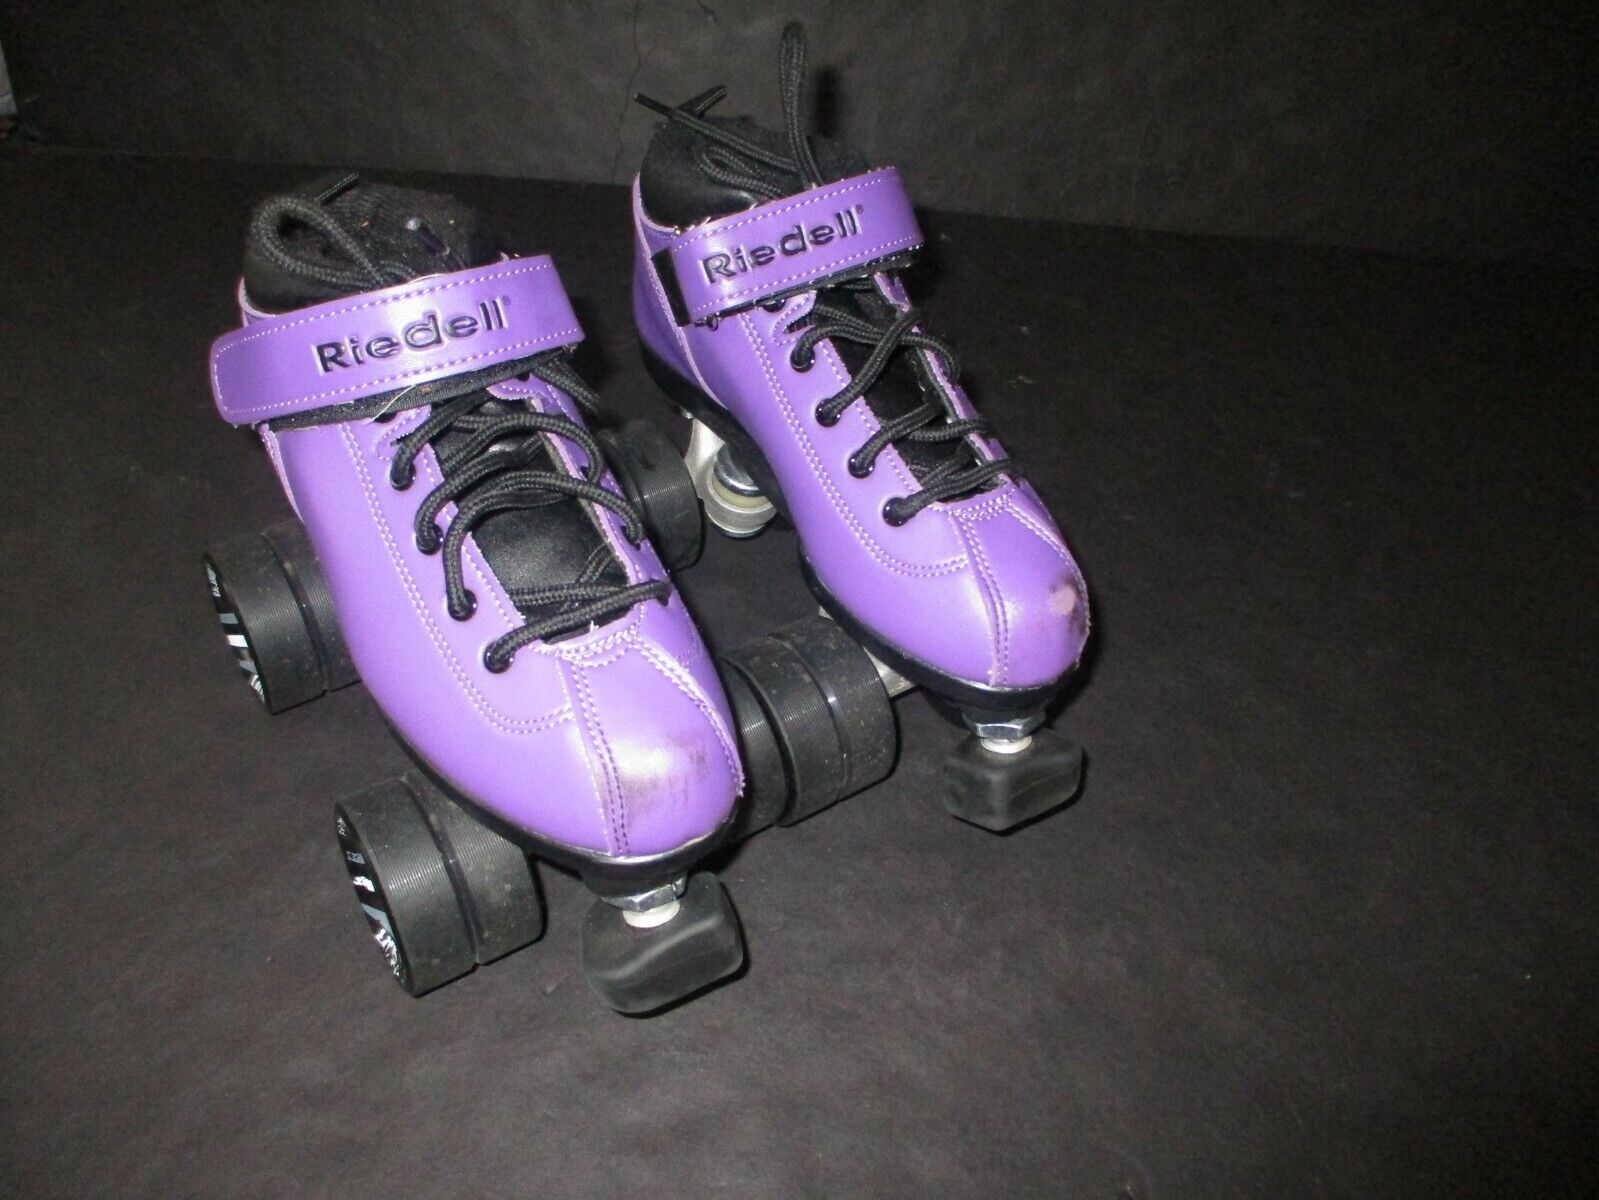 Girls Size 3 Riedell R3 Quad Roller Derby Roller S  s  fishional store for sale